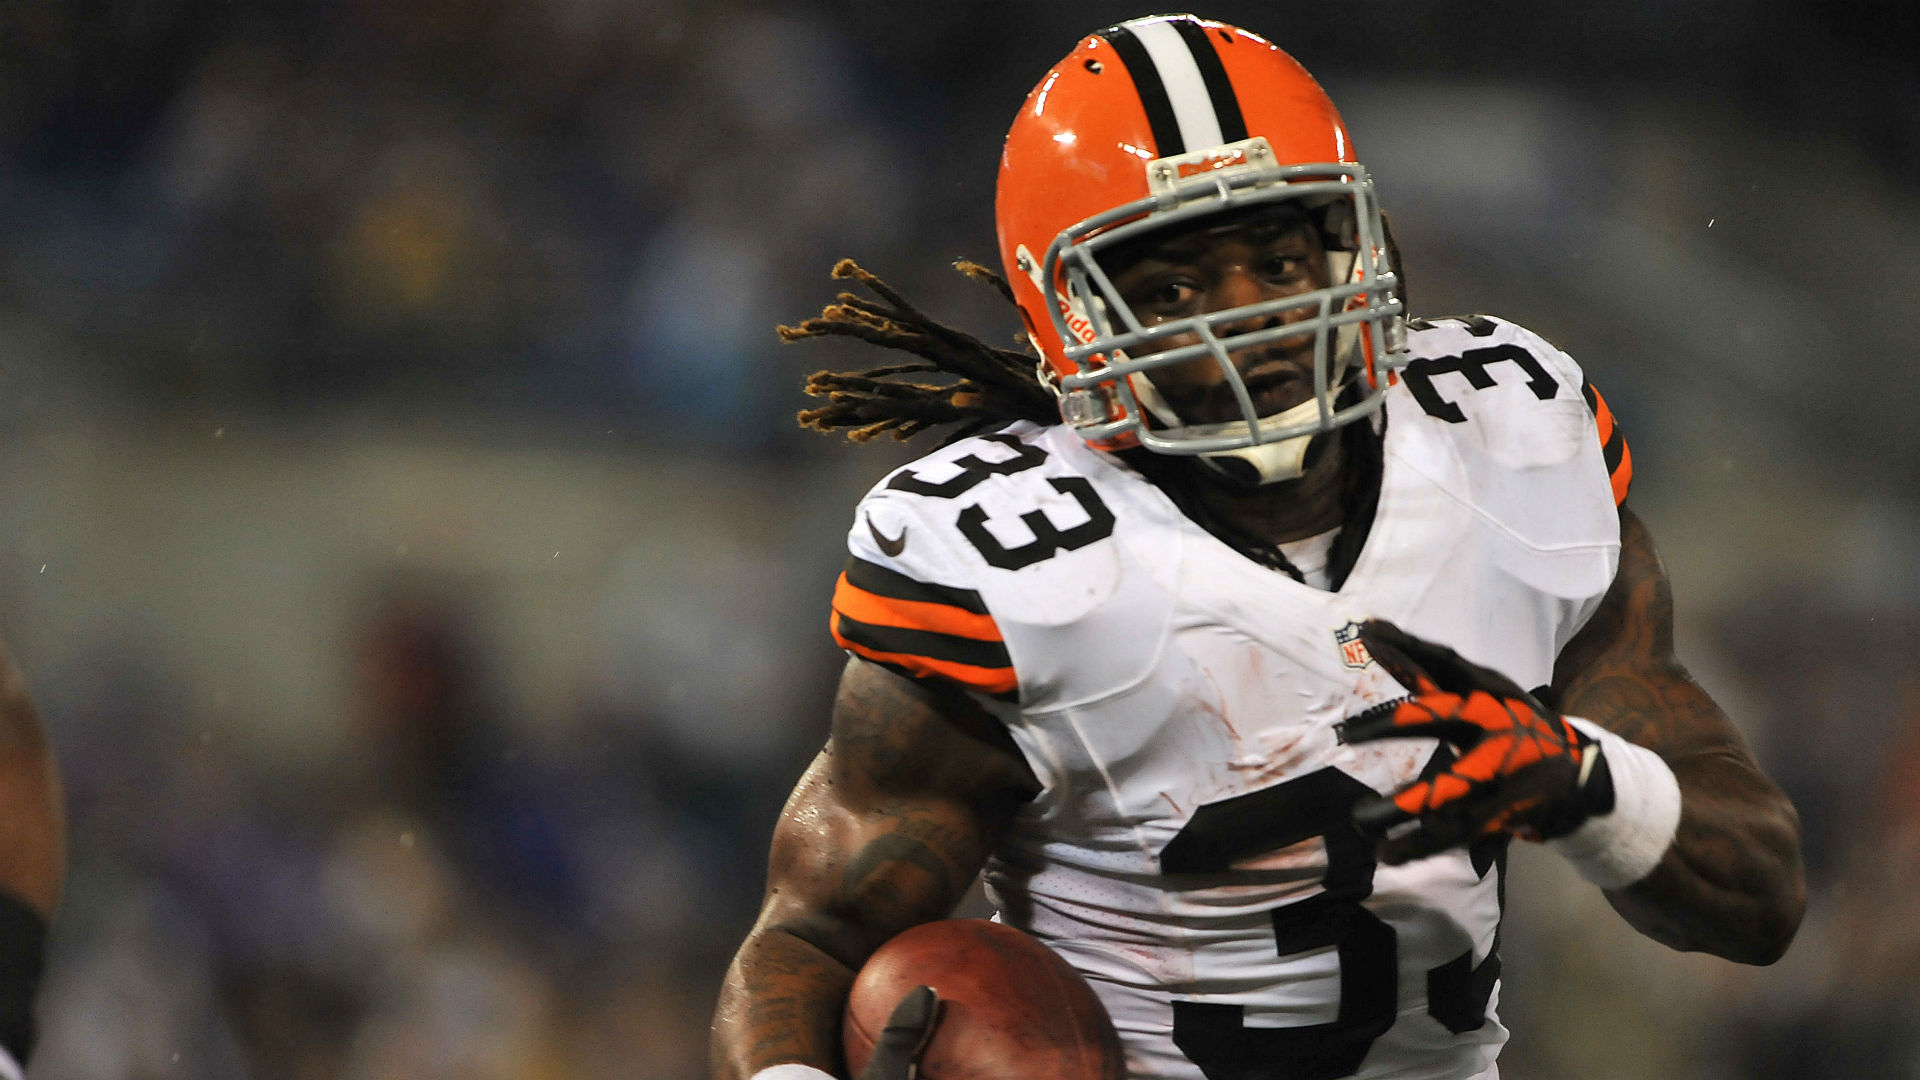 Trent Richardson signs with upstart football league | Sporting News